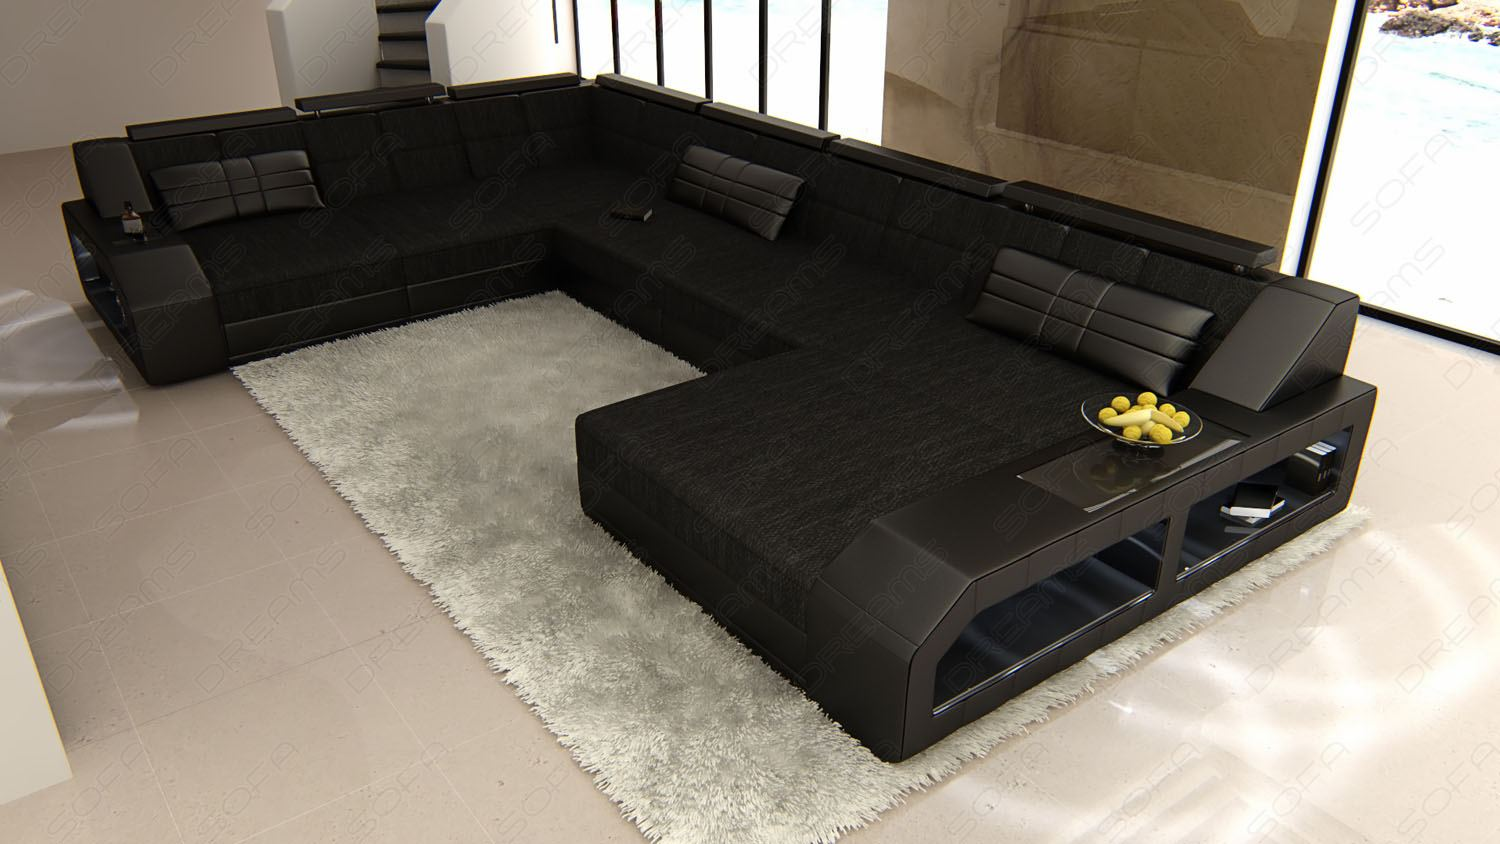 Designer Couch Schwarz Details About Sectional Fabric Sofa Houston Xl Designer Couch With Led Light